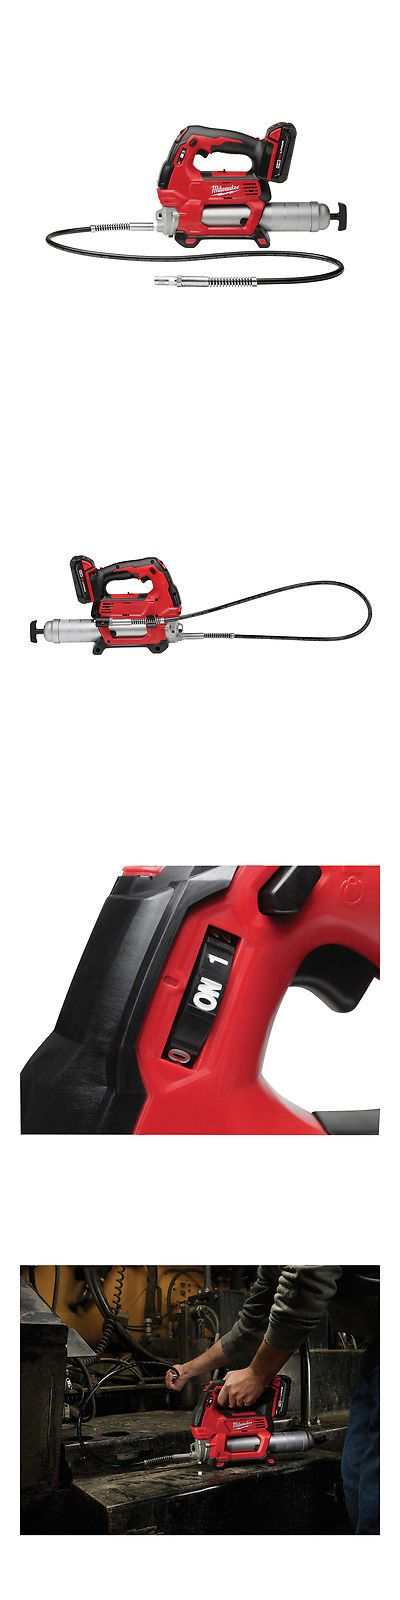 Jig and Scroll Saws 122834: Milwaukee Tools M18 Cordless 2-Speed Grease Gun Kit 2646-21Ct -> BUY IT NOW ONLY: $258.49 on eBay!